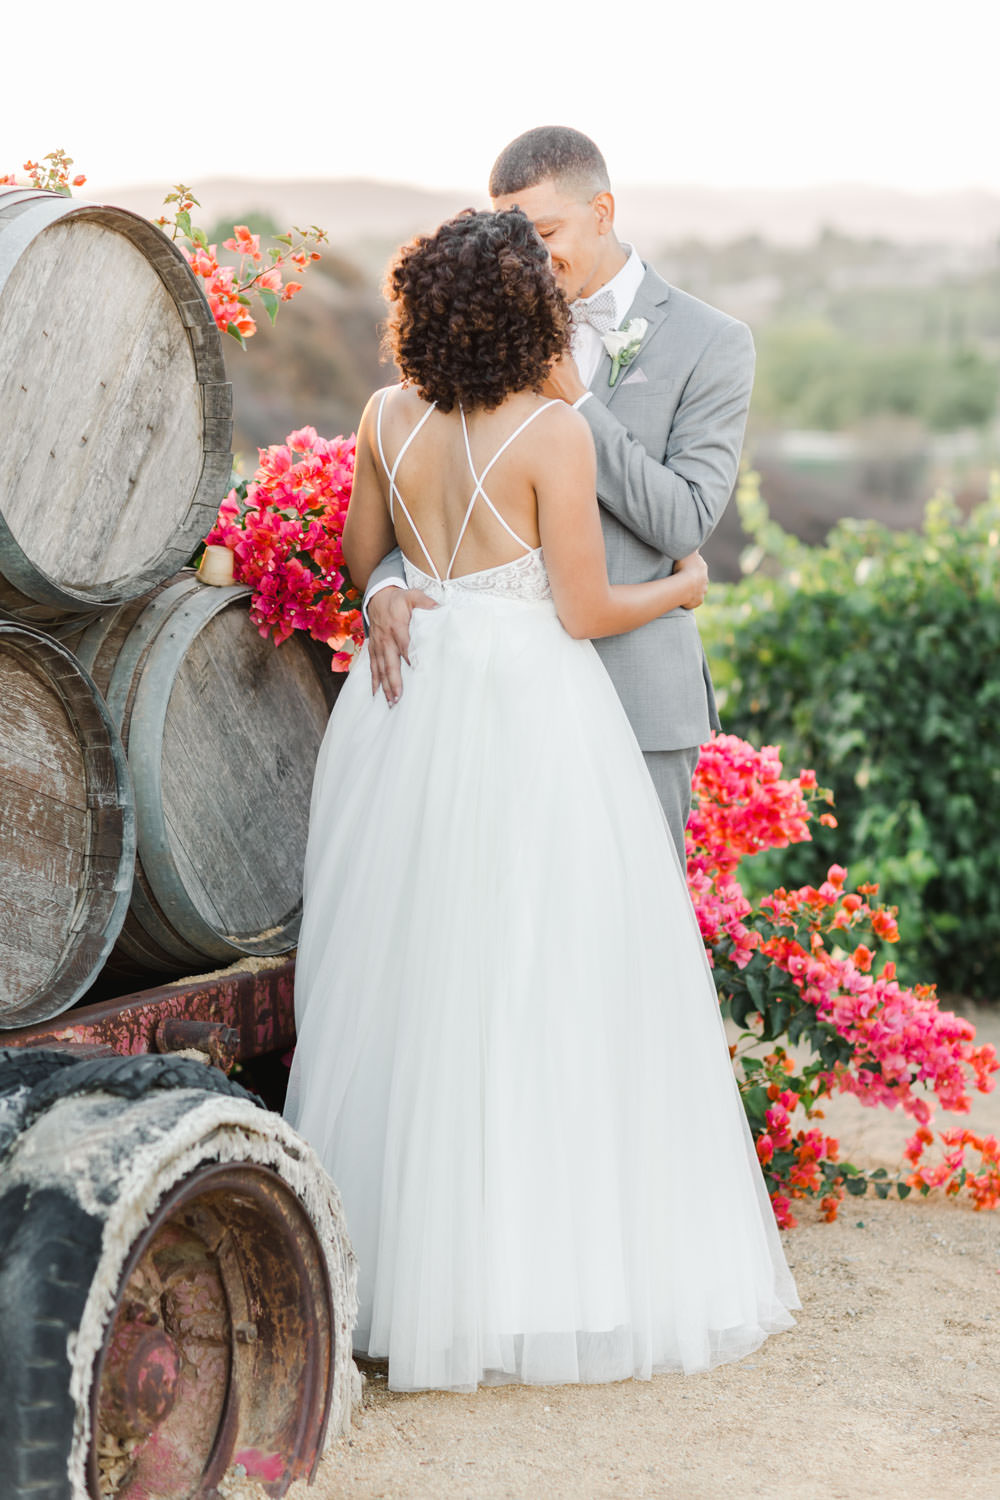 Bride and groom in front of pink bougainvillea and barrels, Cavin ELizabeth Photography